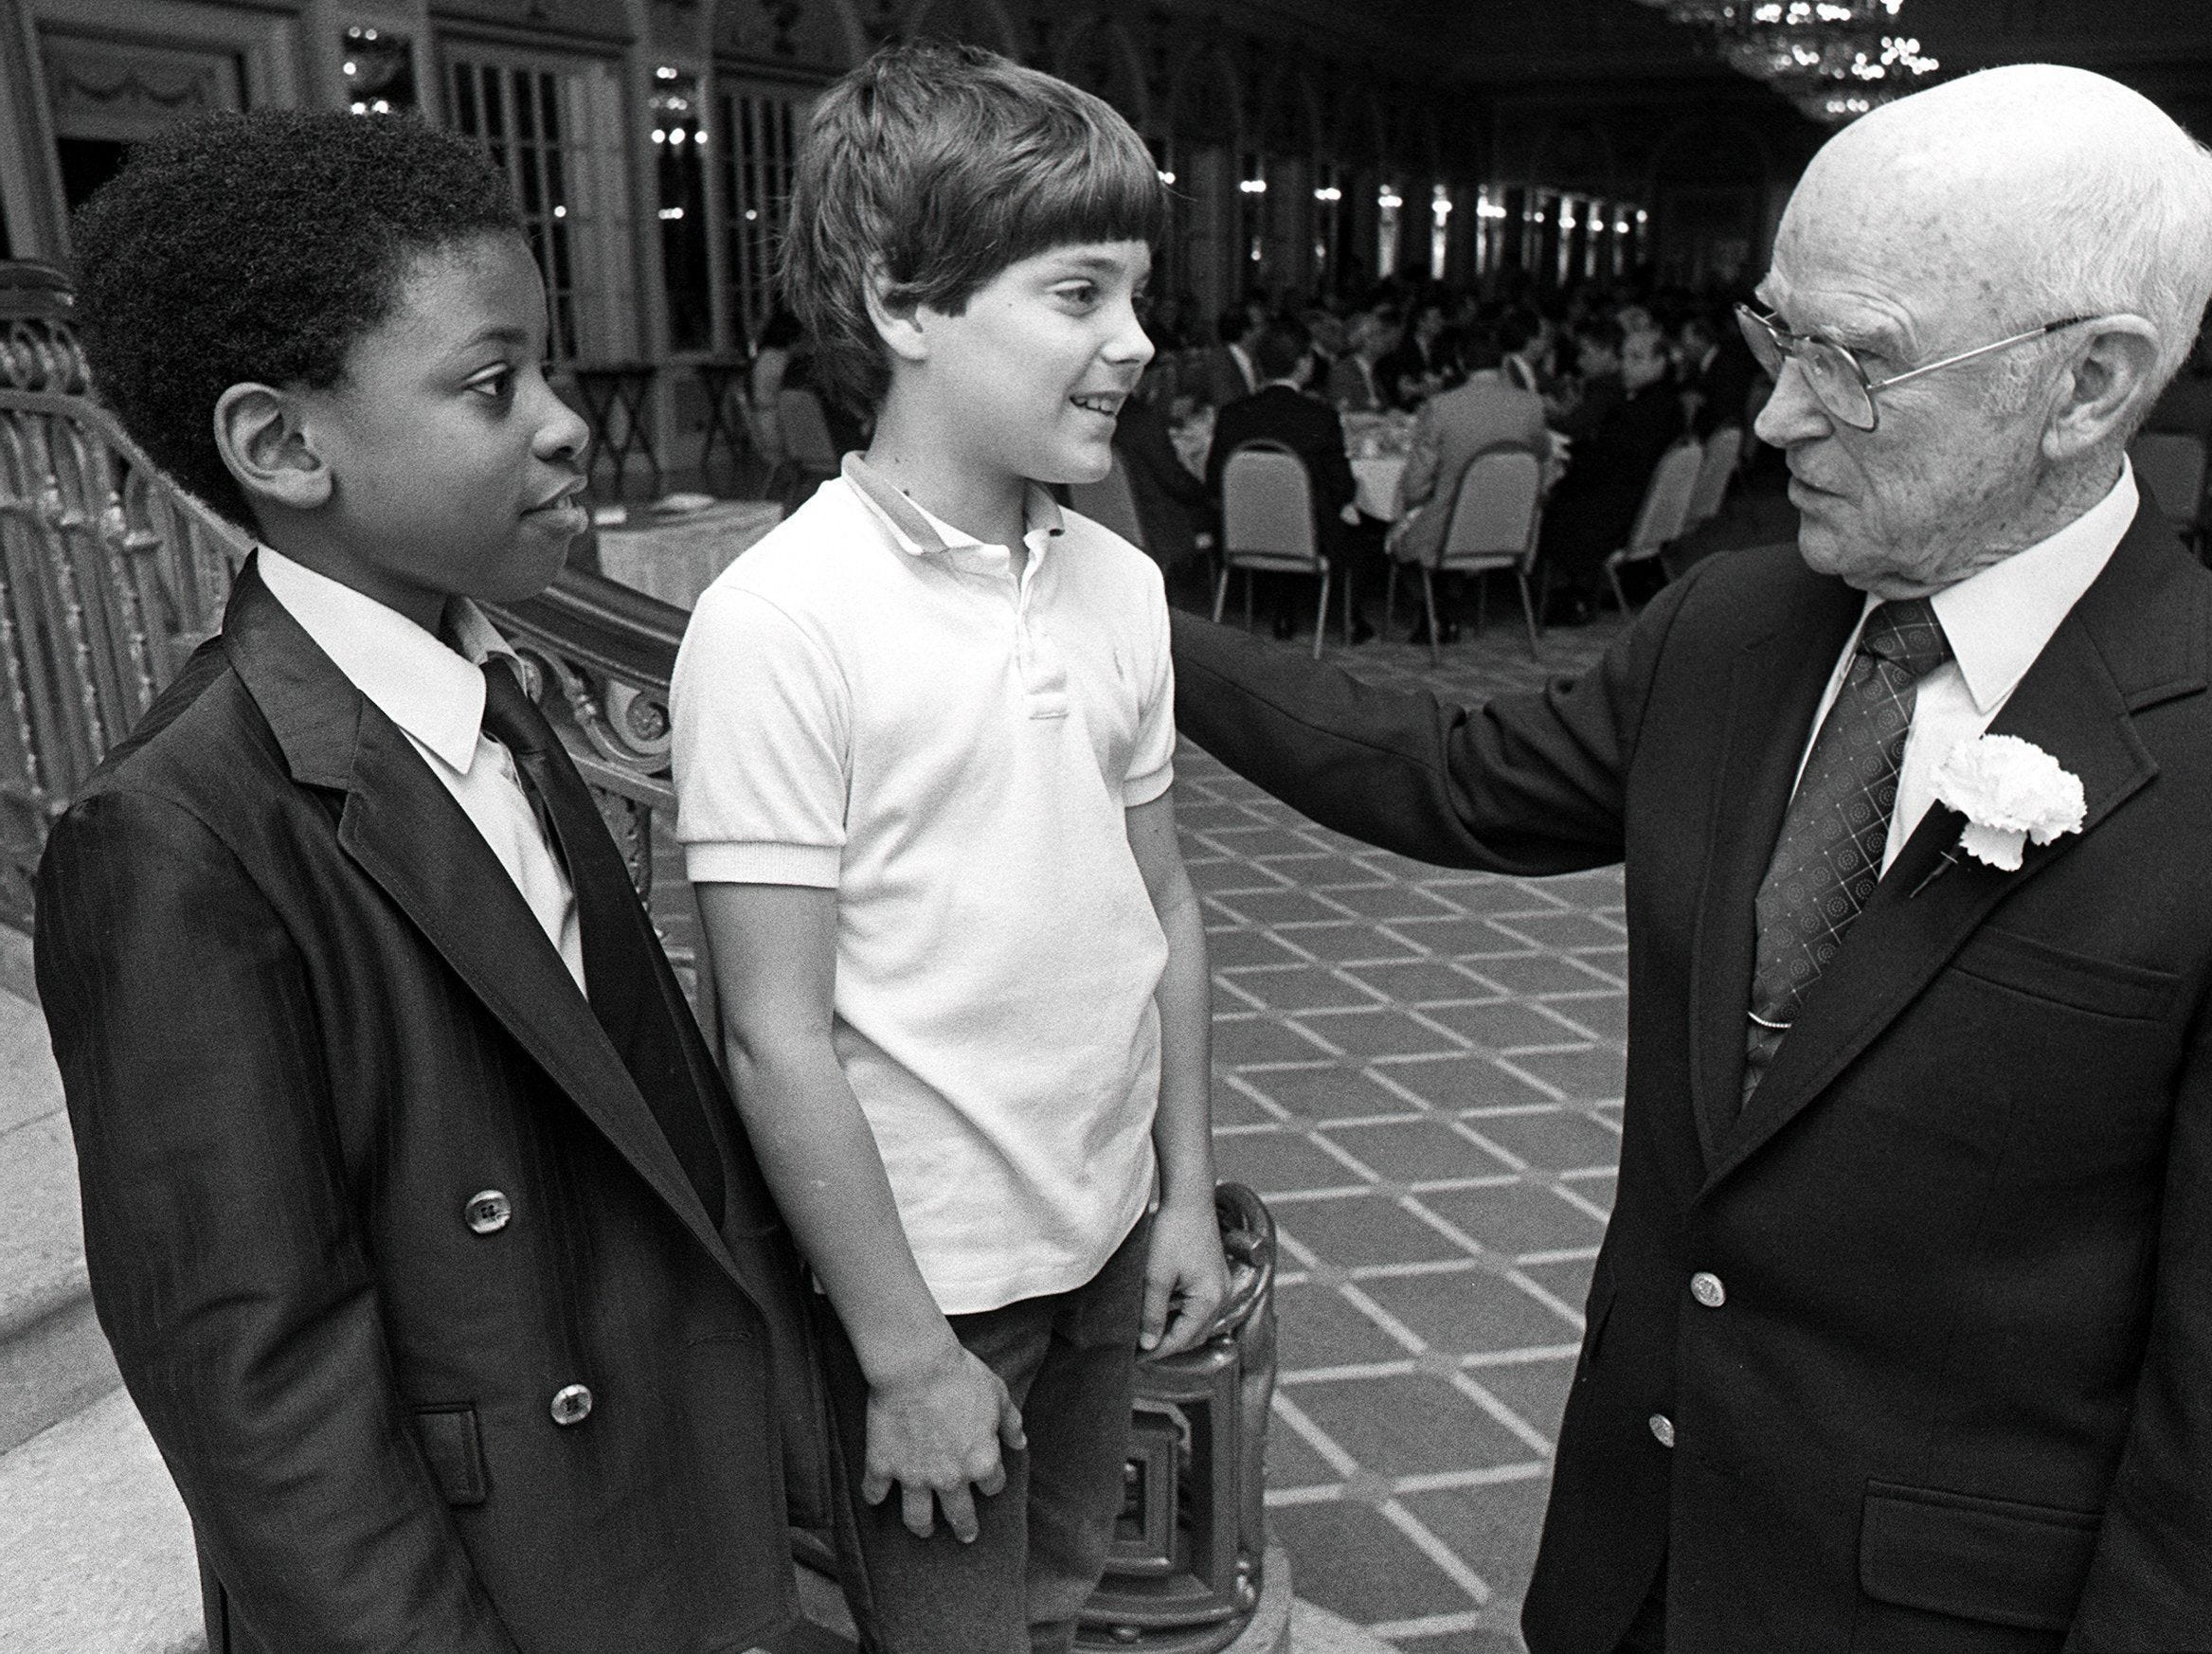 Joseph Cunningham, 10, and Trip Leonard, 13, meet with John Cleghorn, retired Holiday Inns executive, at the Man For boy luncheon at The Peabody in May 1984.  The event was the kickoff for the Man For Boys Club's fund-raising program to send needy boys to summer camp.  Cleghorn was the guest speaker at the event sponsored by the Kiwanis Club and The Commercial Appeal.  100 boys are expected to attend the 1984 camp, which begins June 14 in the Ozark Mountain foothills near Hardy, AR.